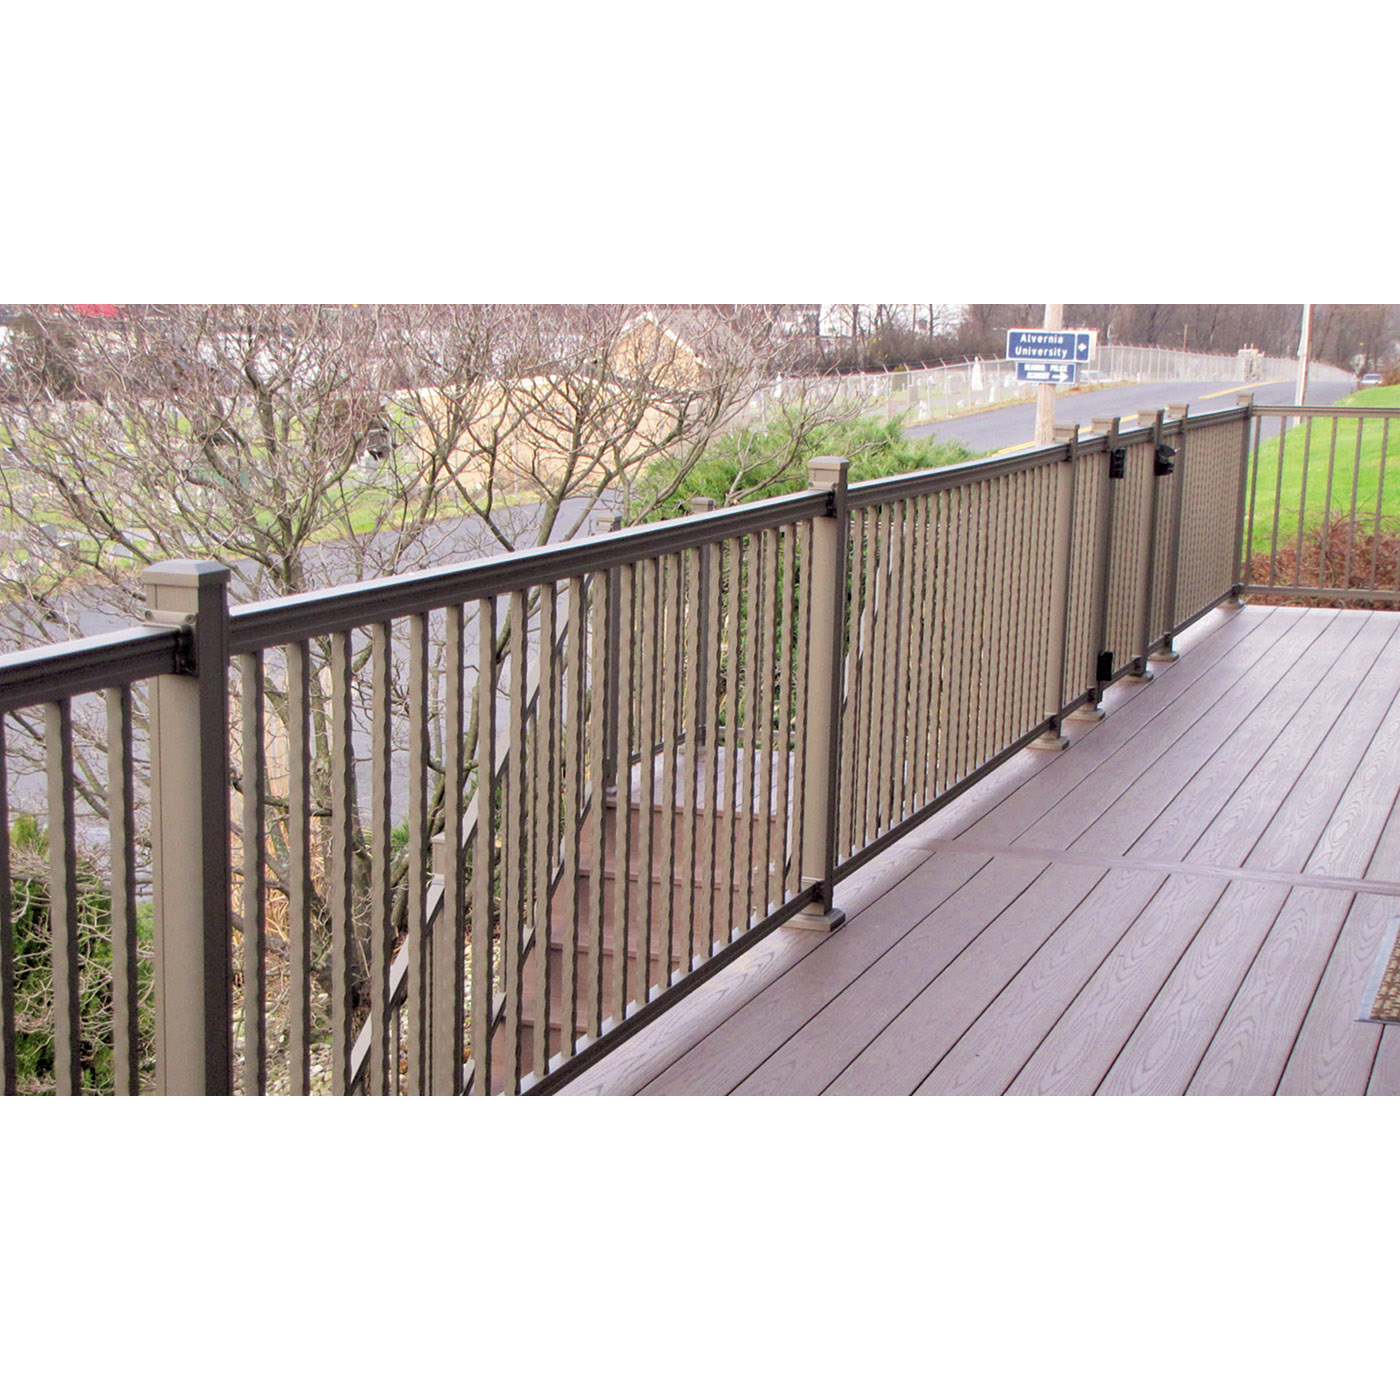 American Railing with Square Hammered Balusters